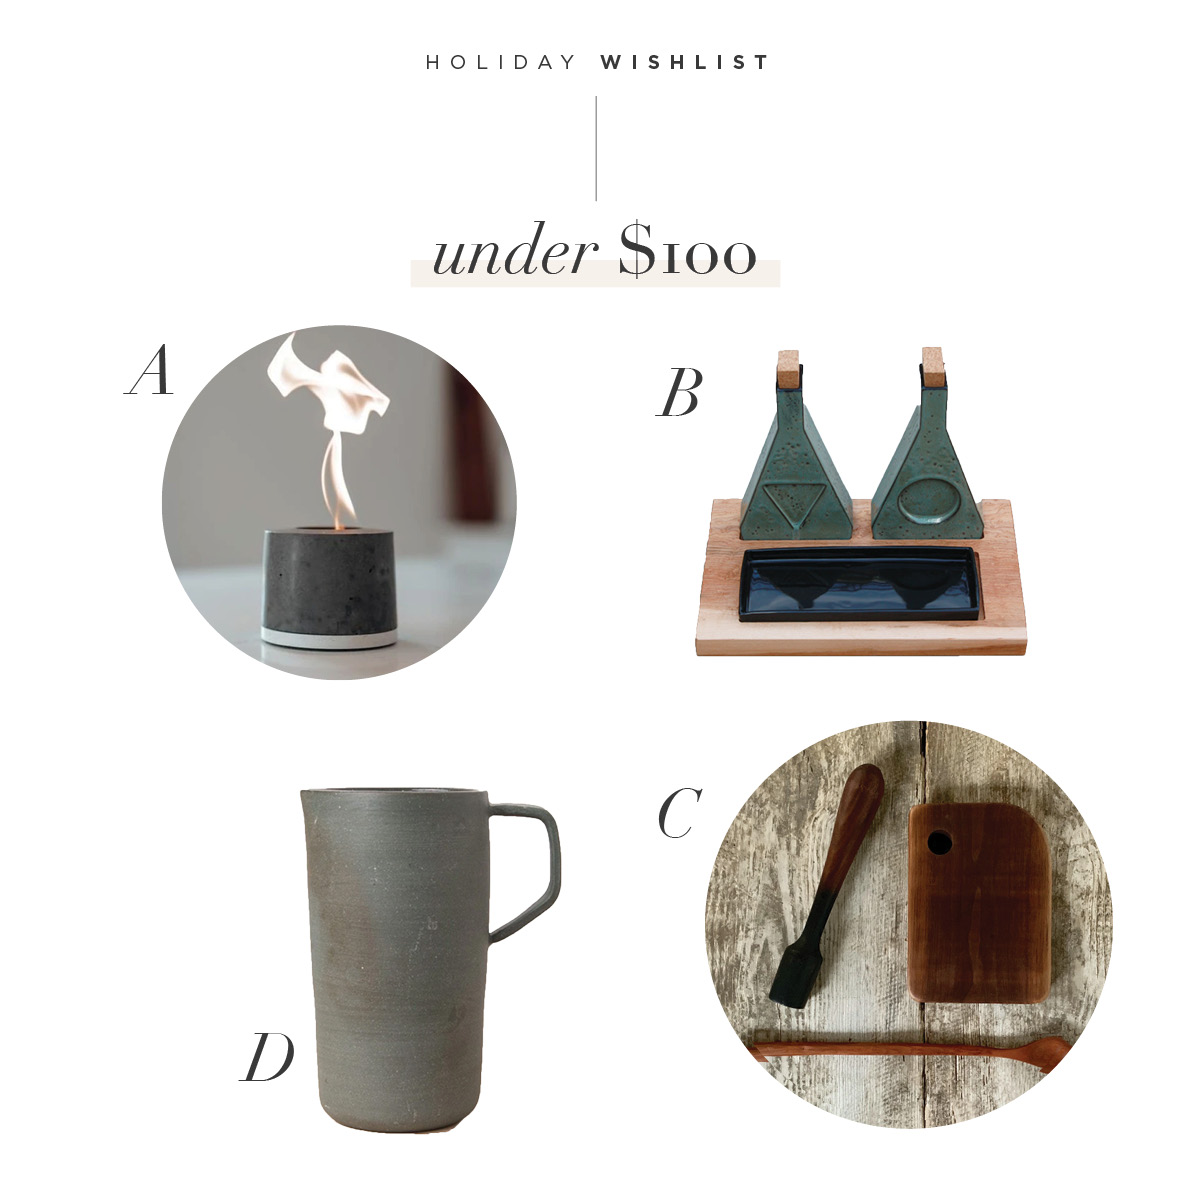 Our Wishlist From The Dowry – Unique, Ethical Gifting Under $100